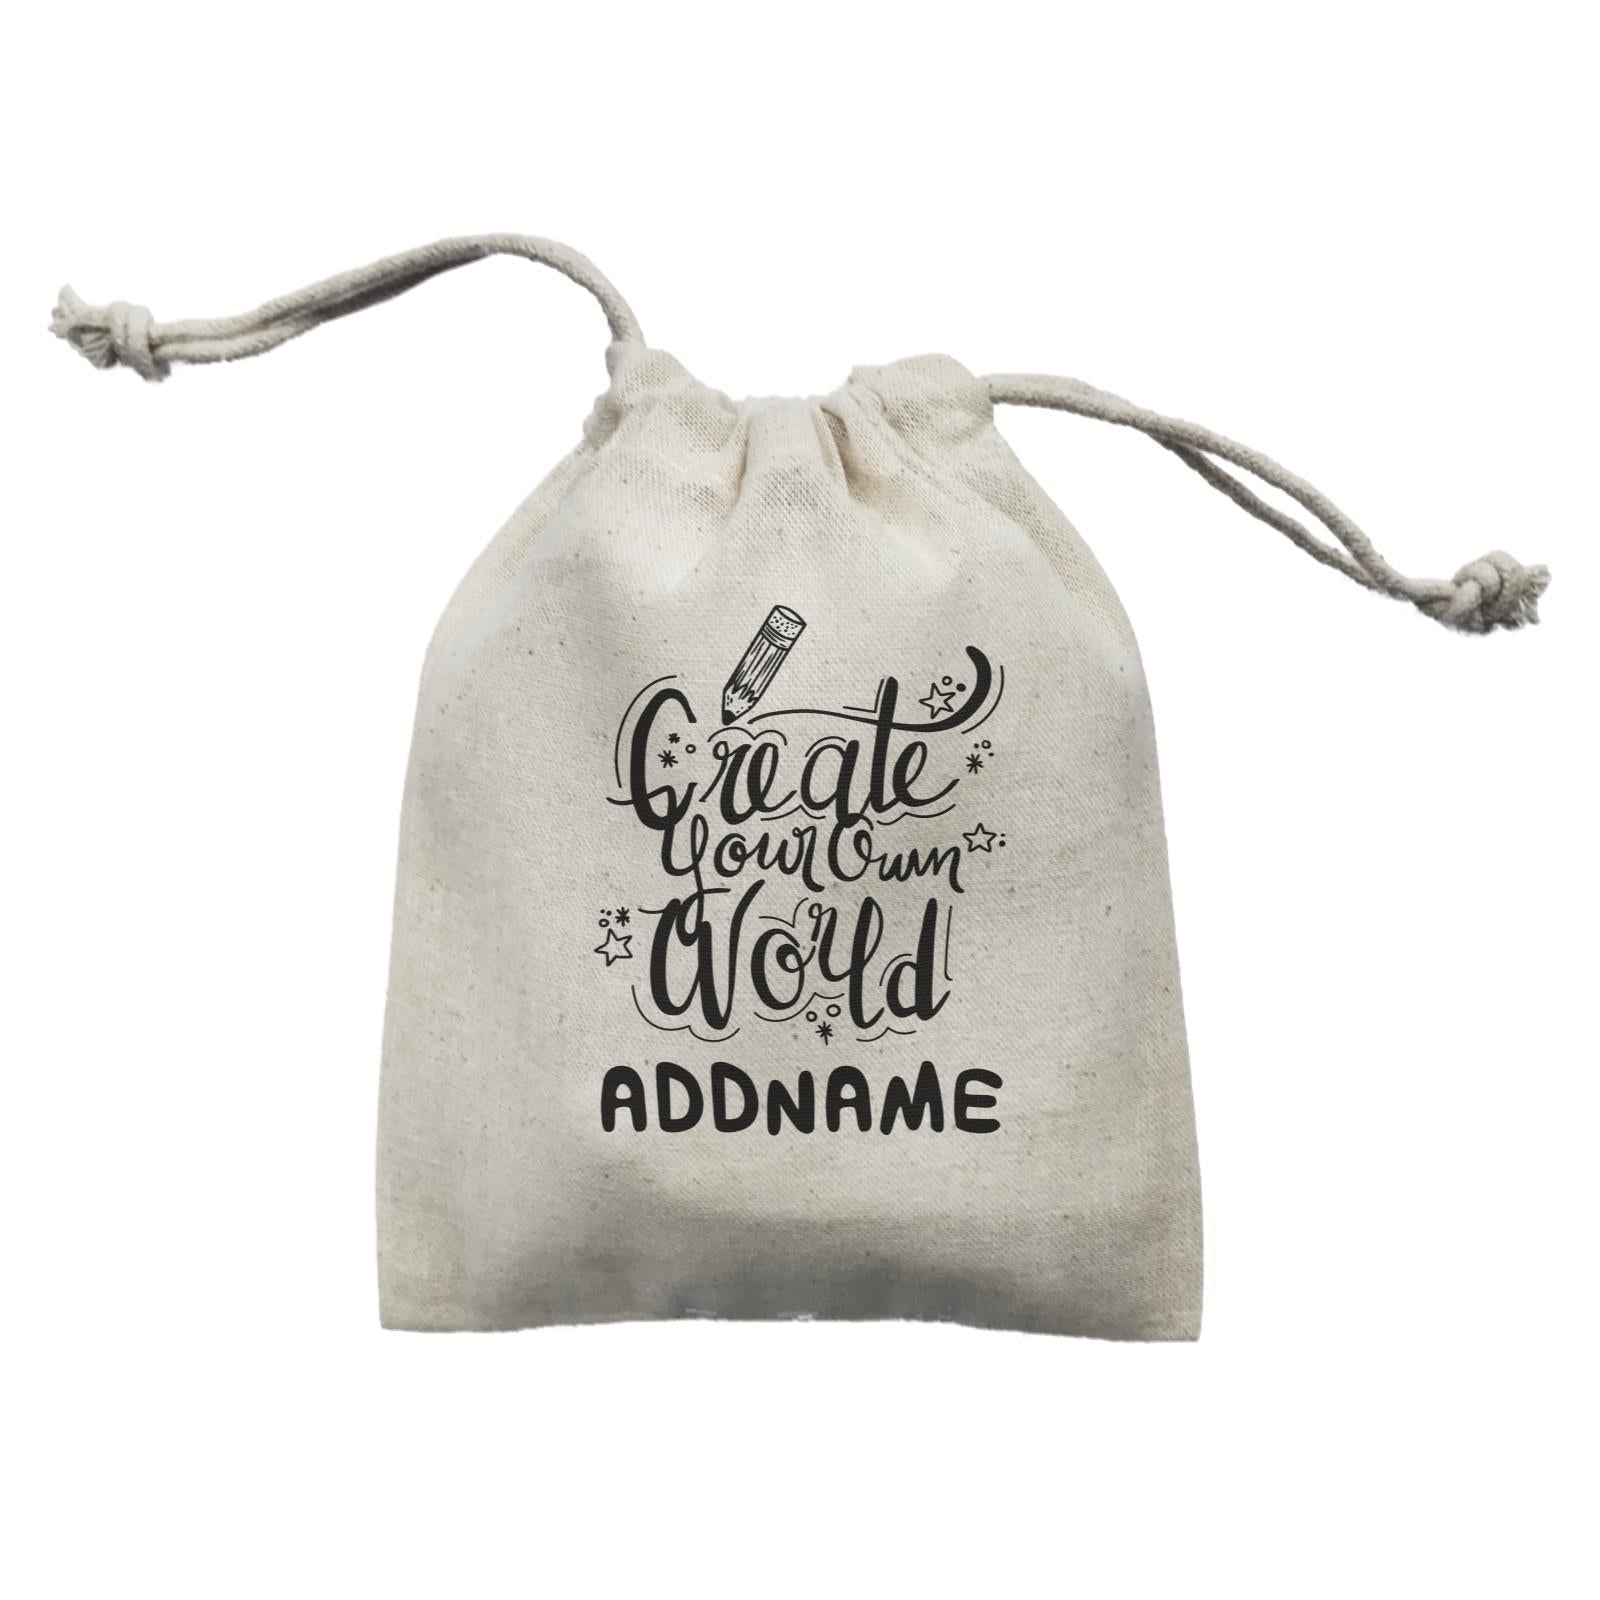 Children's Day Gift Series Create Your Own World Addname  Mini Pouch